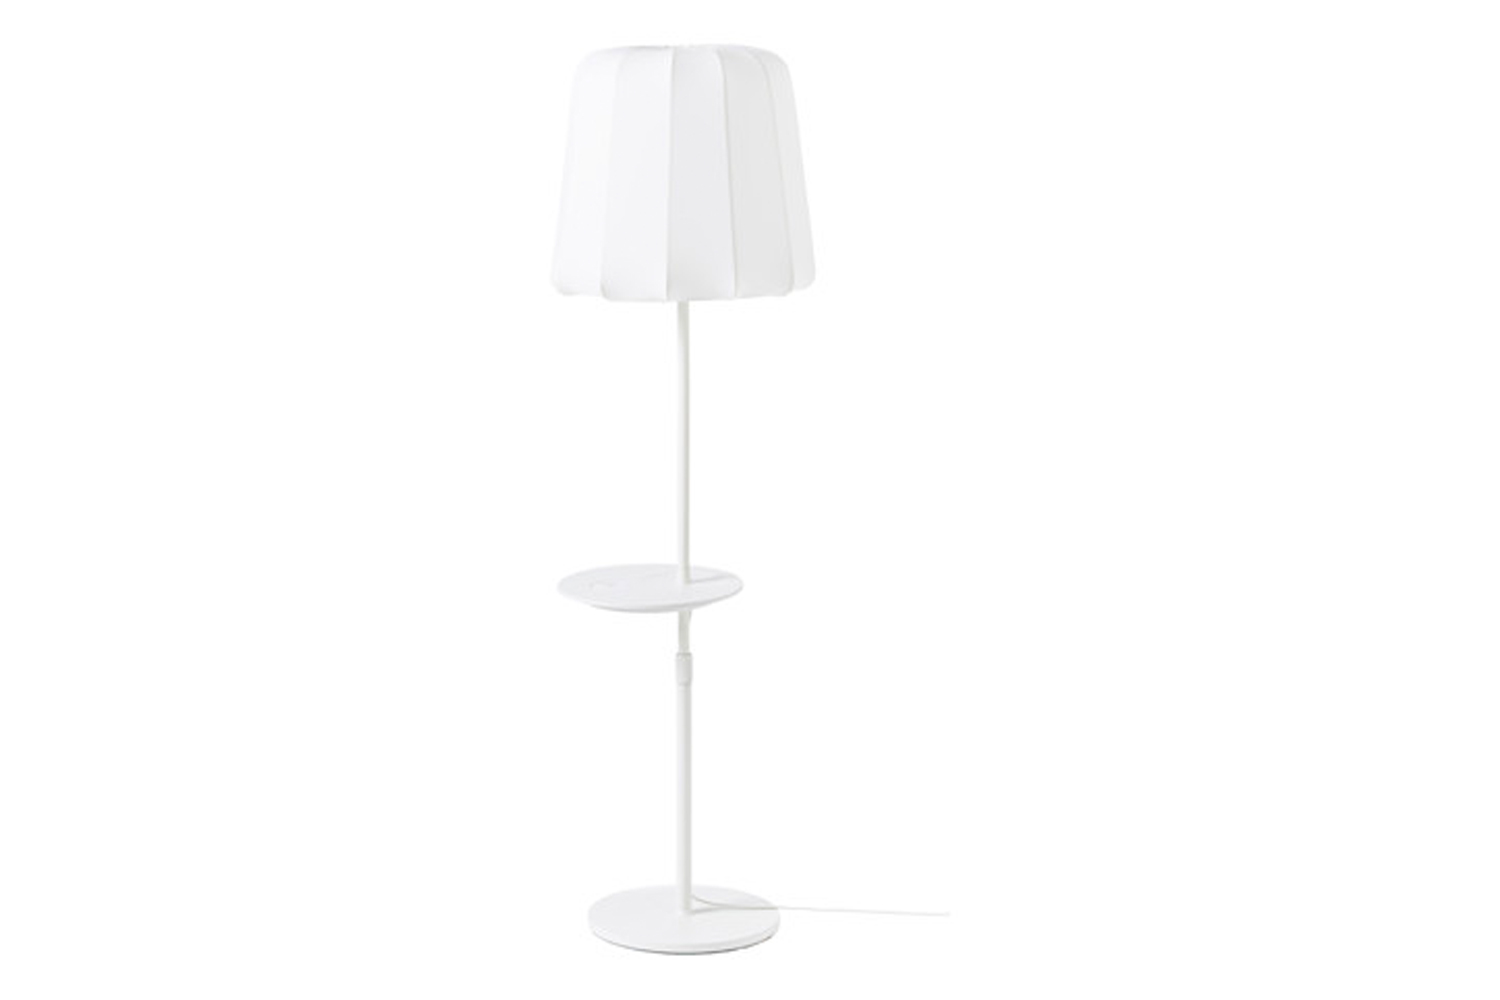 Shout Out To Ikea For These Sick Wireless Charging Tables And Lamps